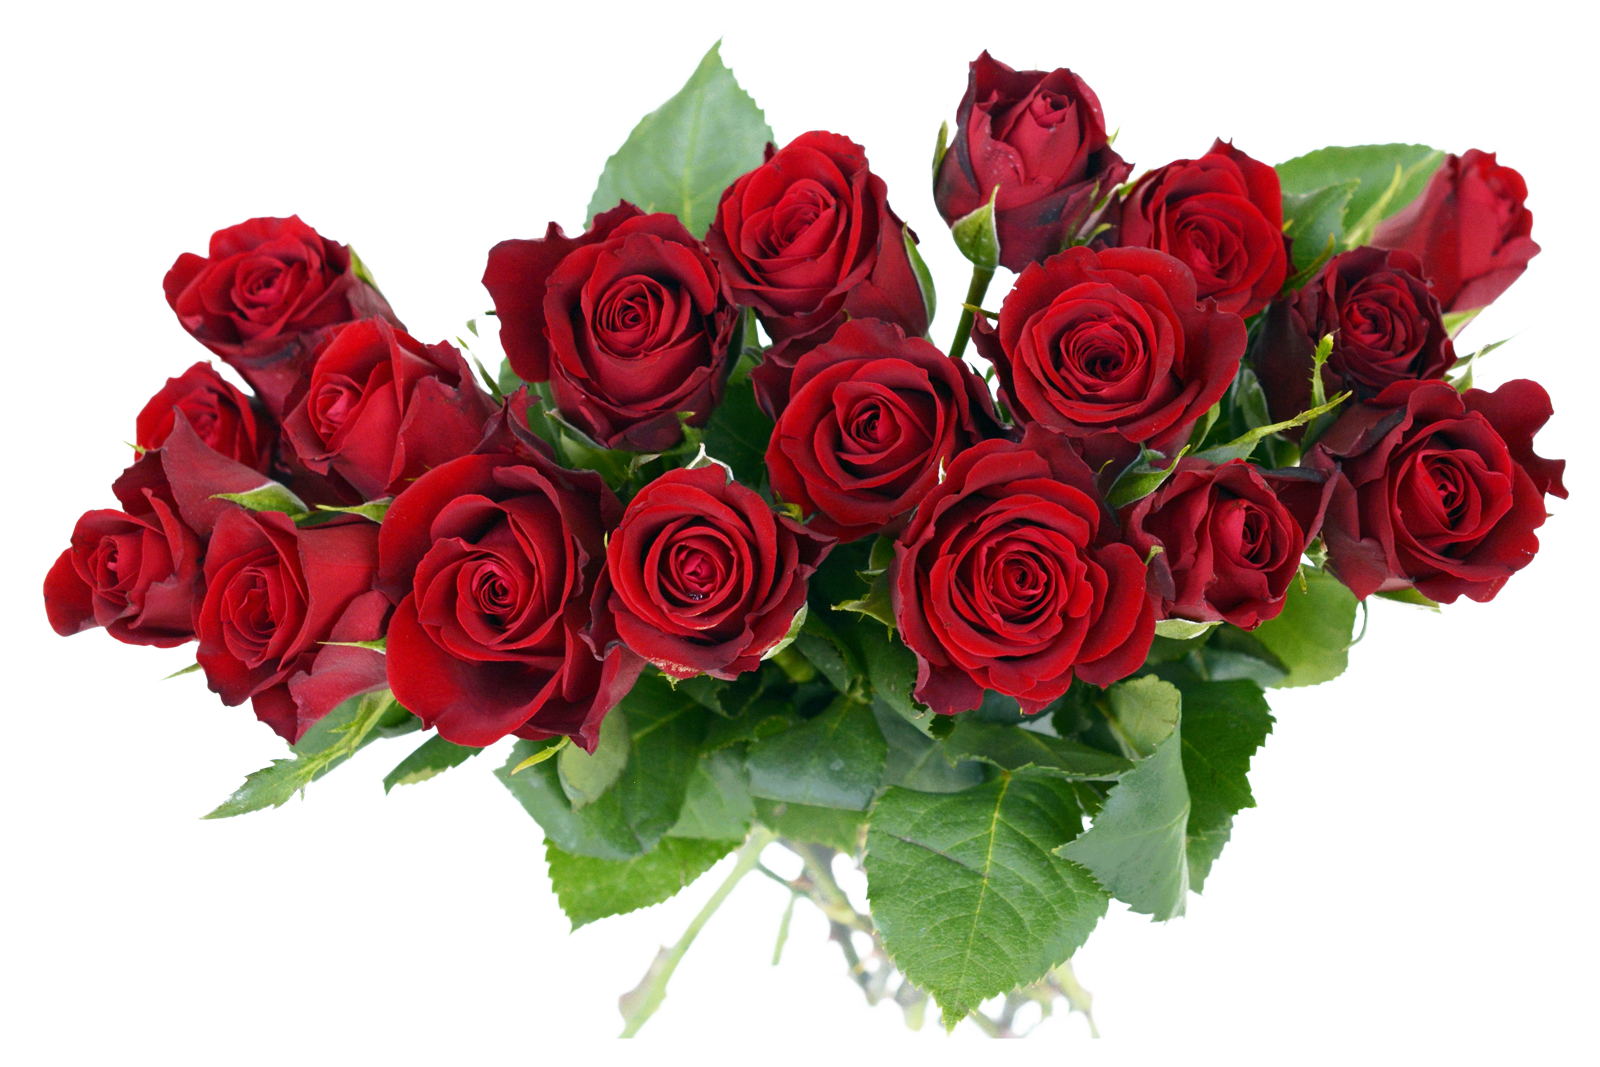 PNGPIX-COM-Rose-Bouquet-PNG-Transparent-Image